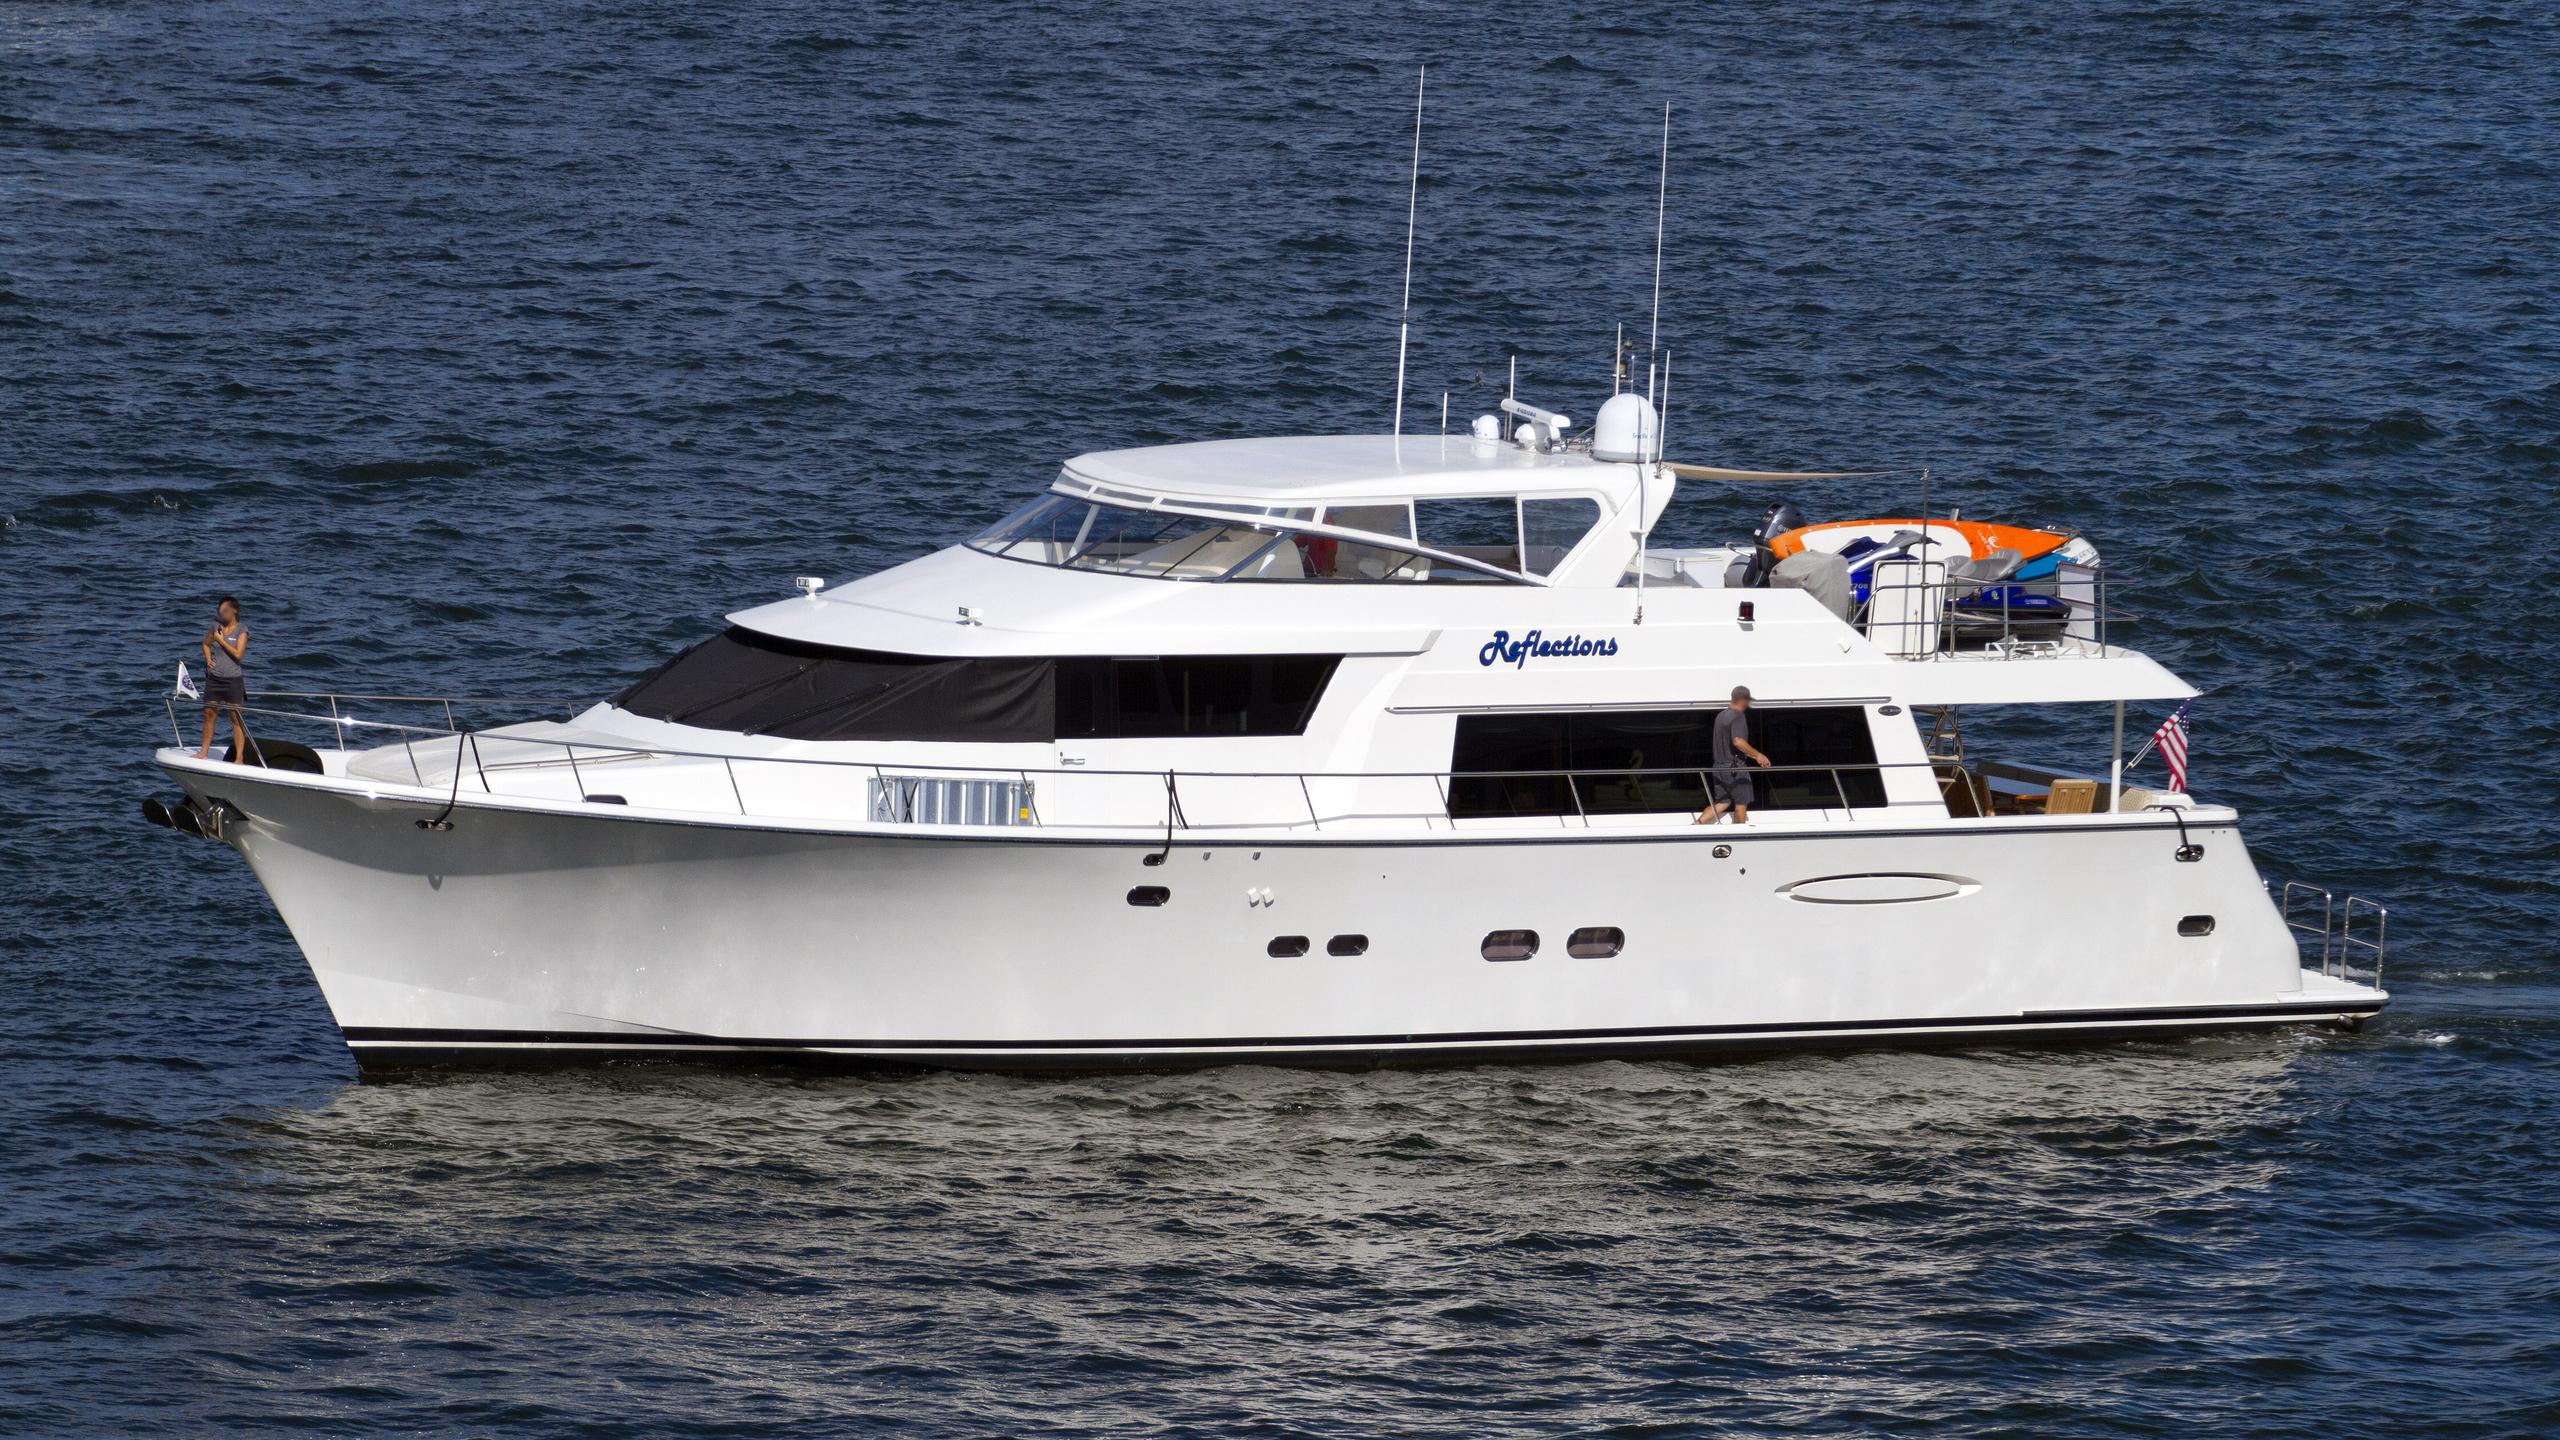 livy-lou-reflections-motor-yacht-pacific-mariner-85-2004-26m-profile